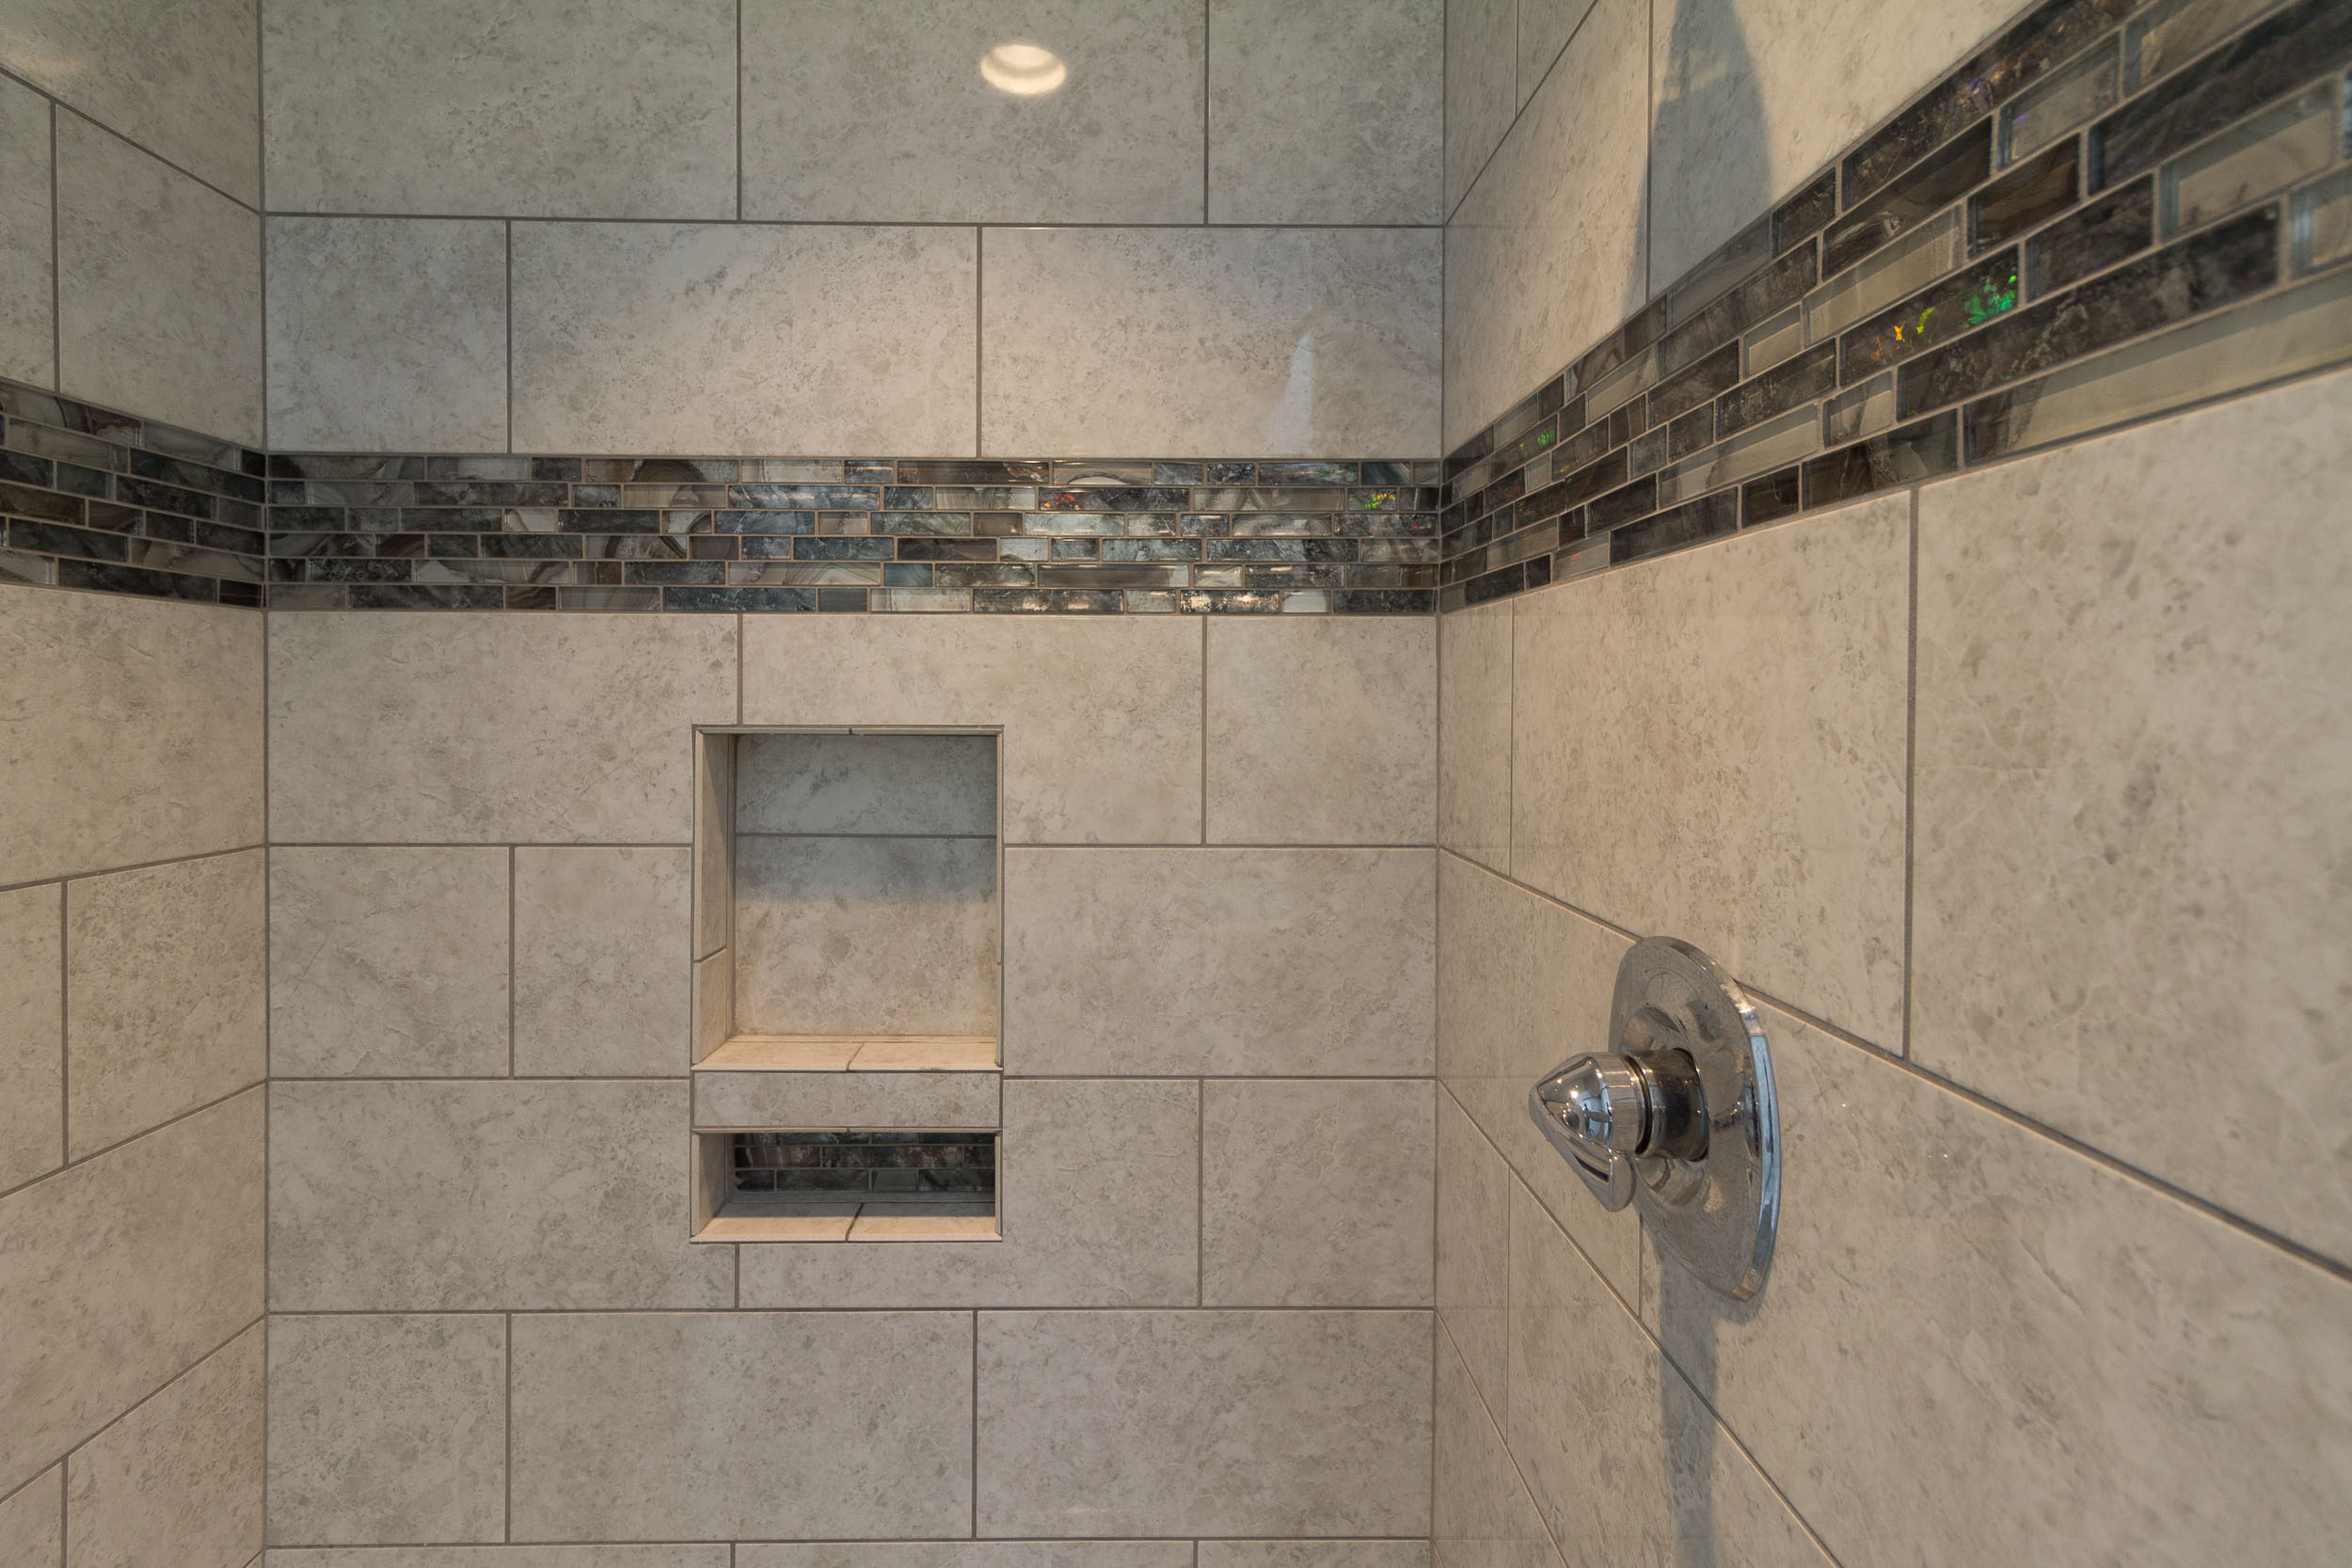 A Fiberglass Shower Stall Was Replaced With New Tile